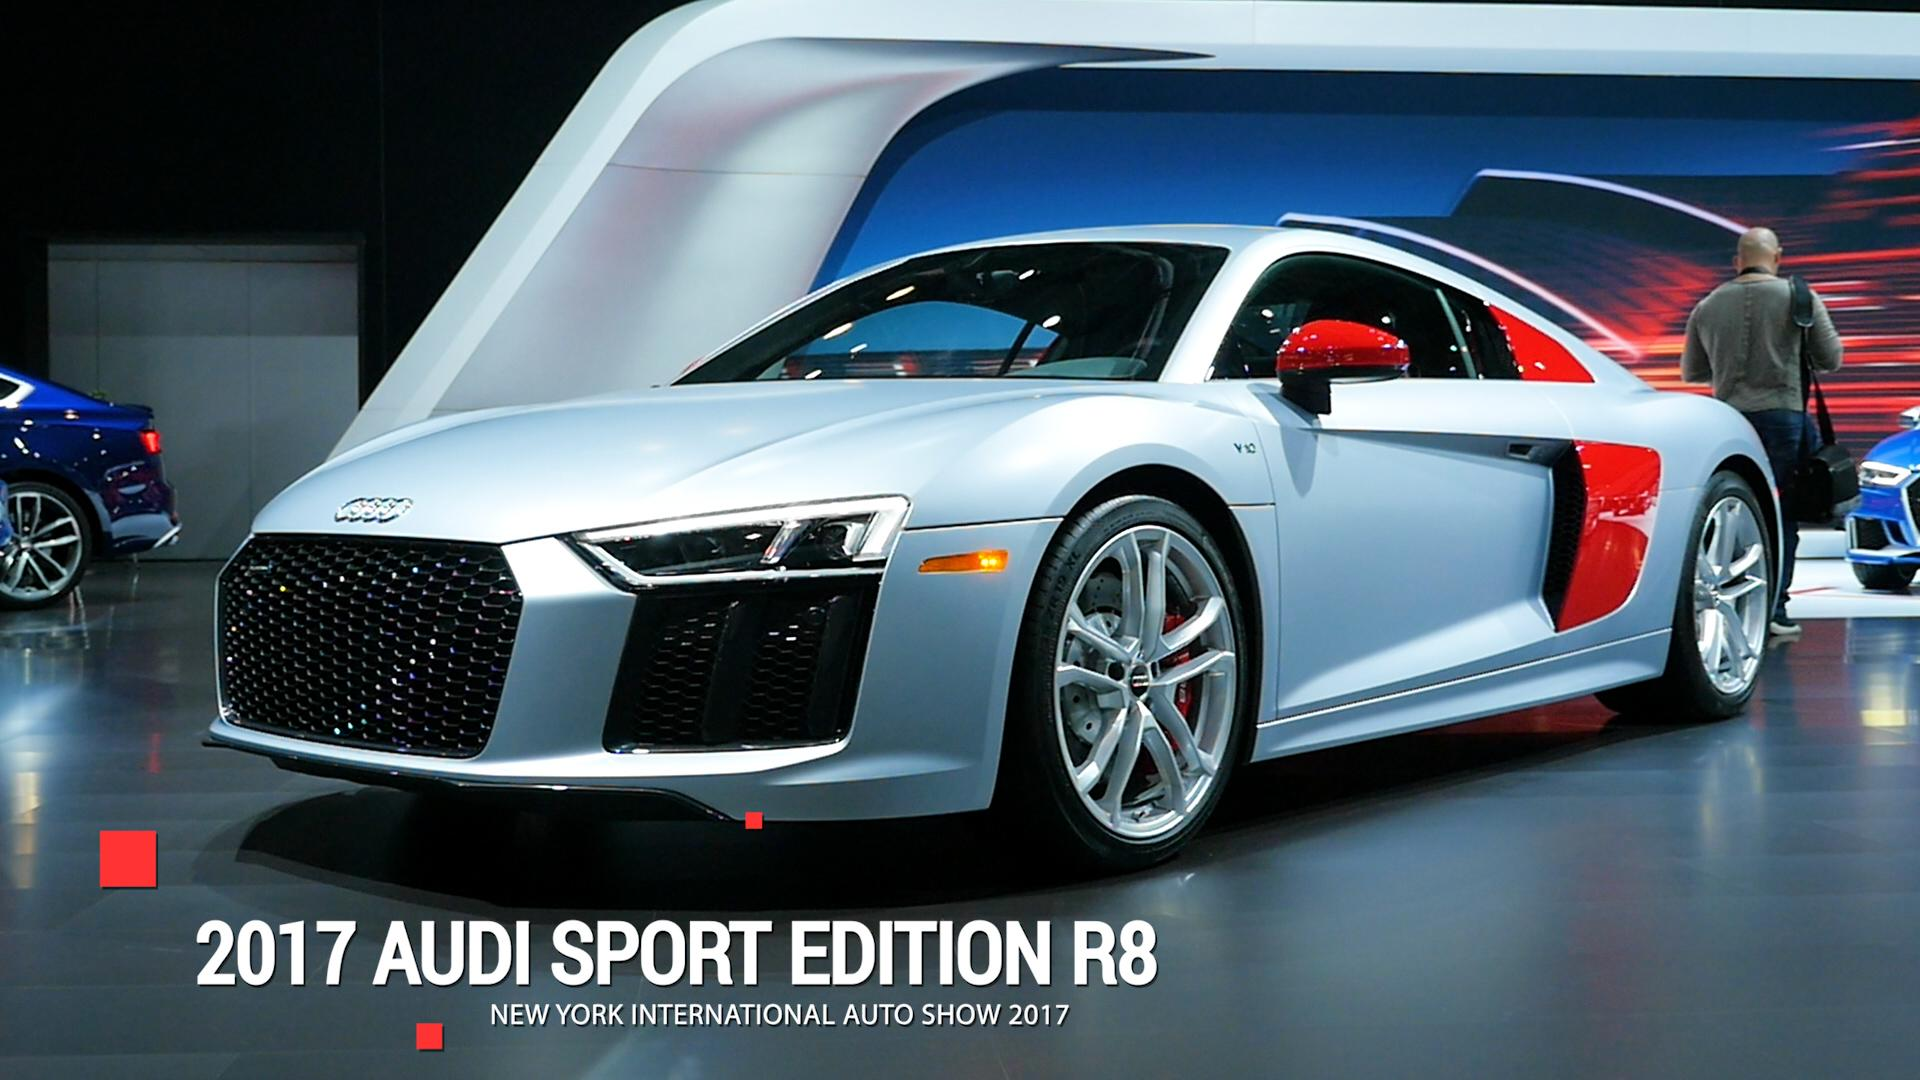 Audi Wants A Hypercar But Rs Crossovers And Evs Are Job One